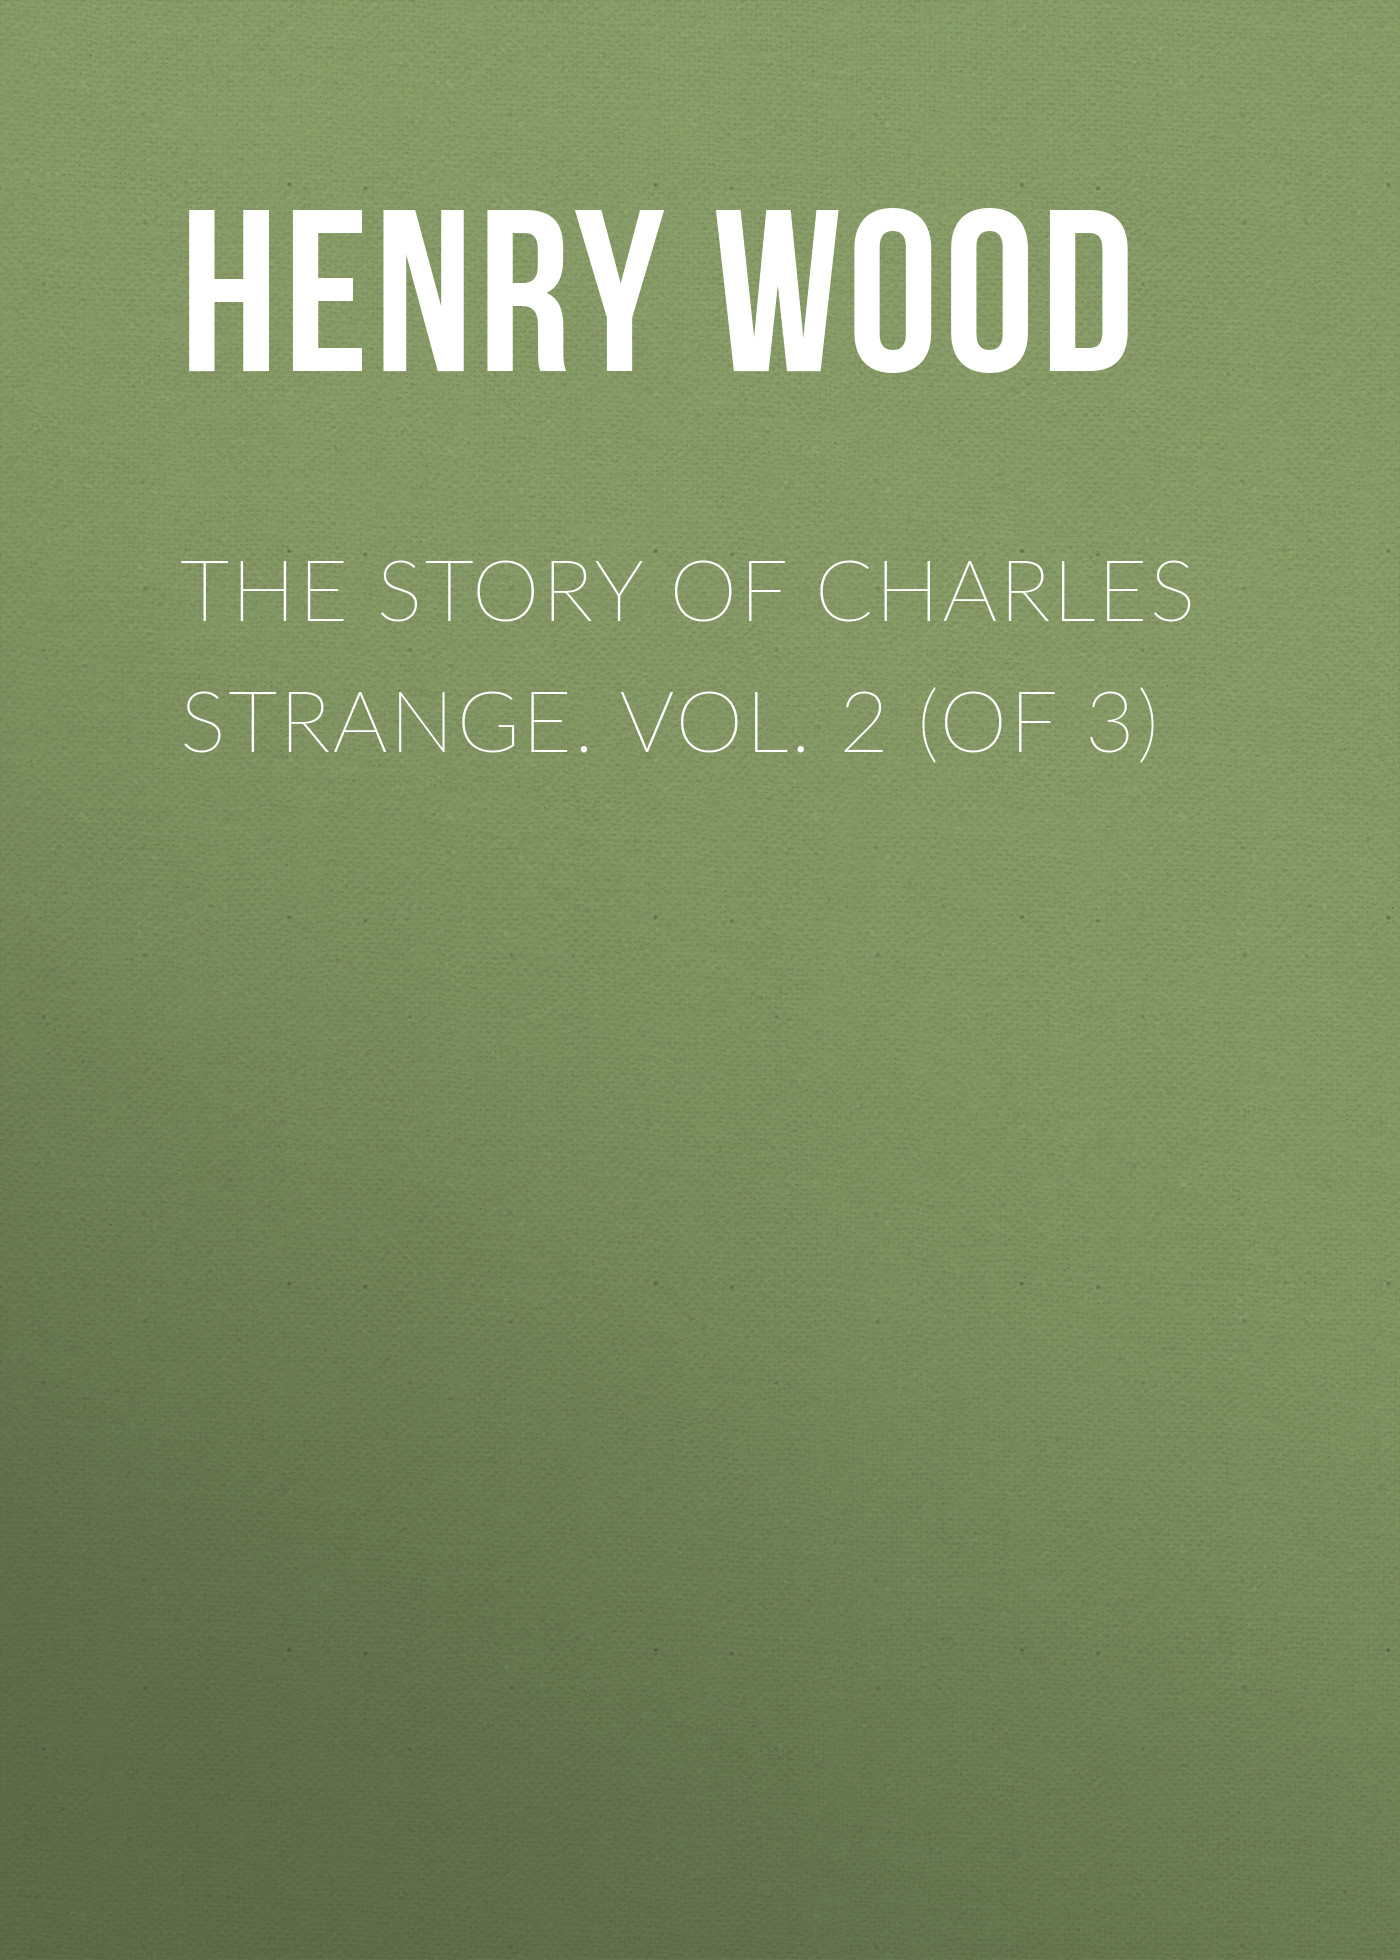 лучшая цена Henry Wood The Story of Charles Strange. Vol. 2 (of 3)